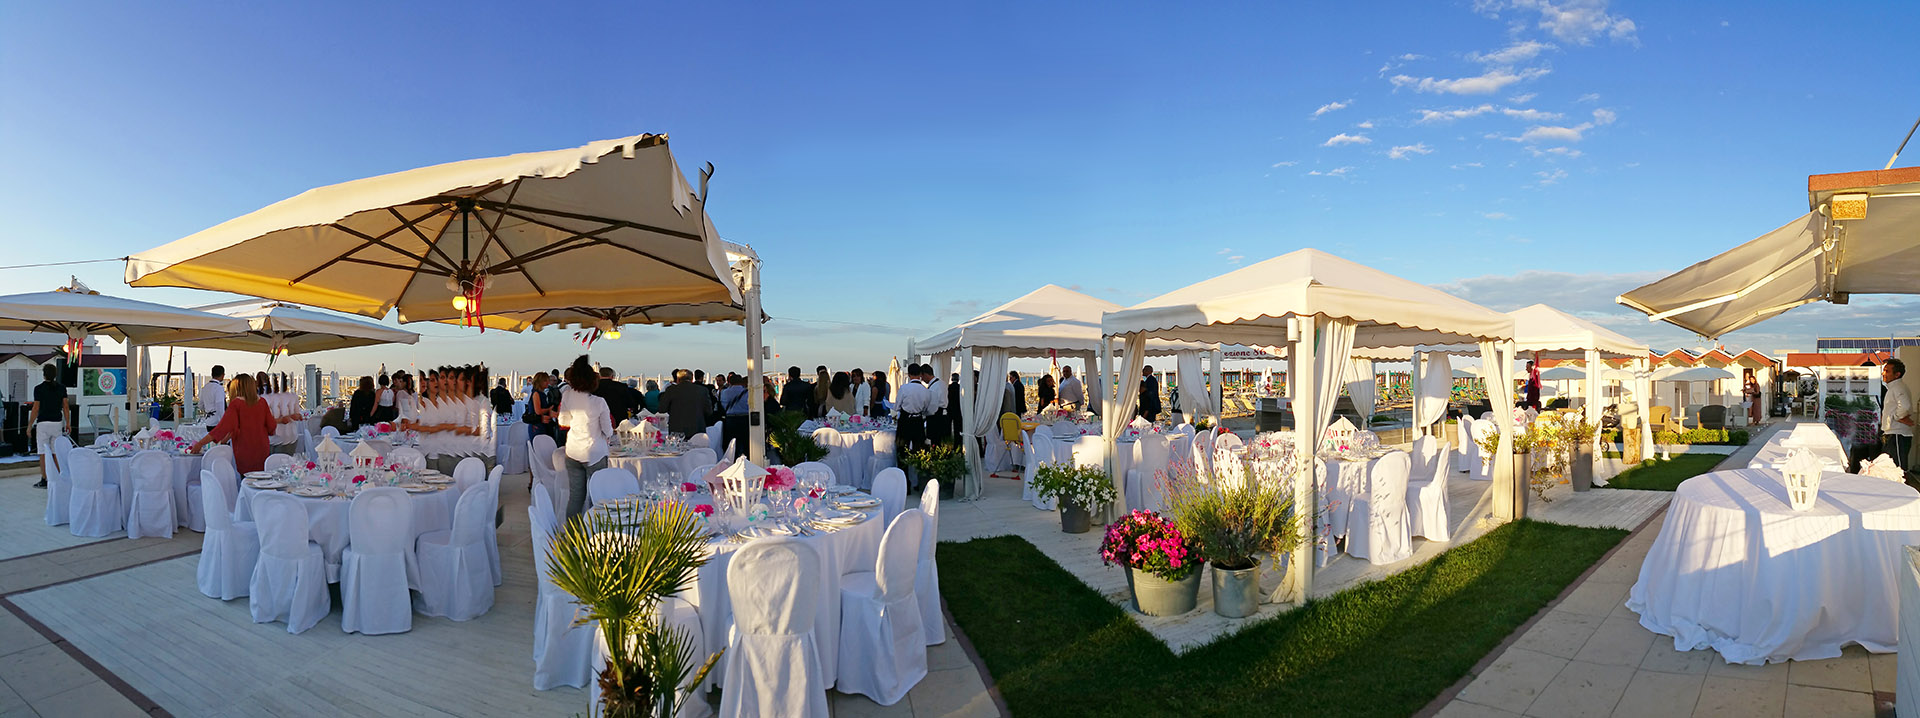 wedding_spiaggia_2015_panoramica_1920px